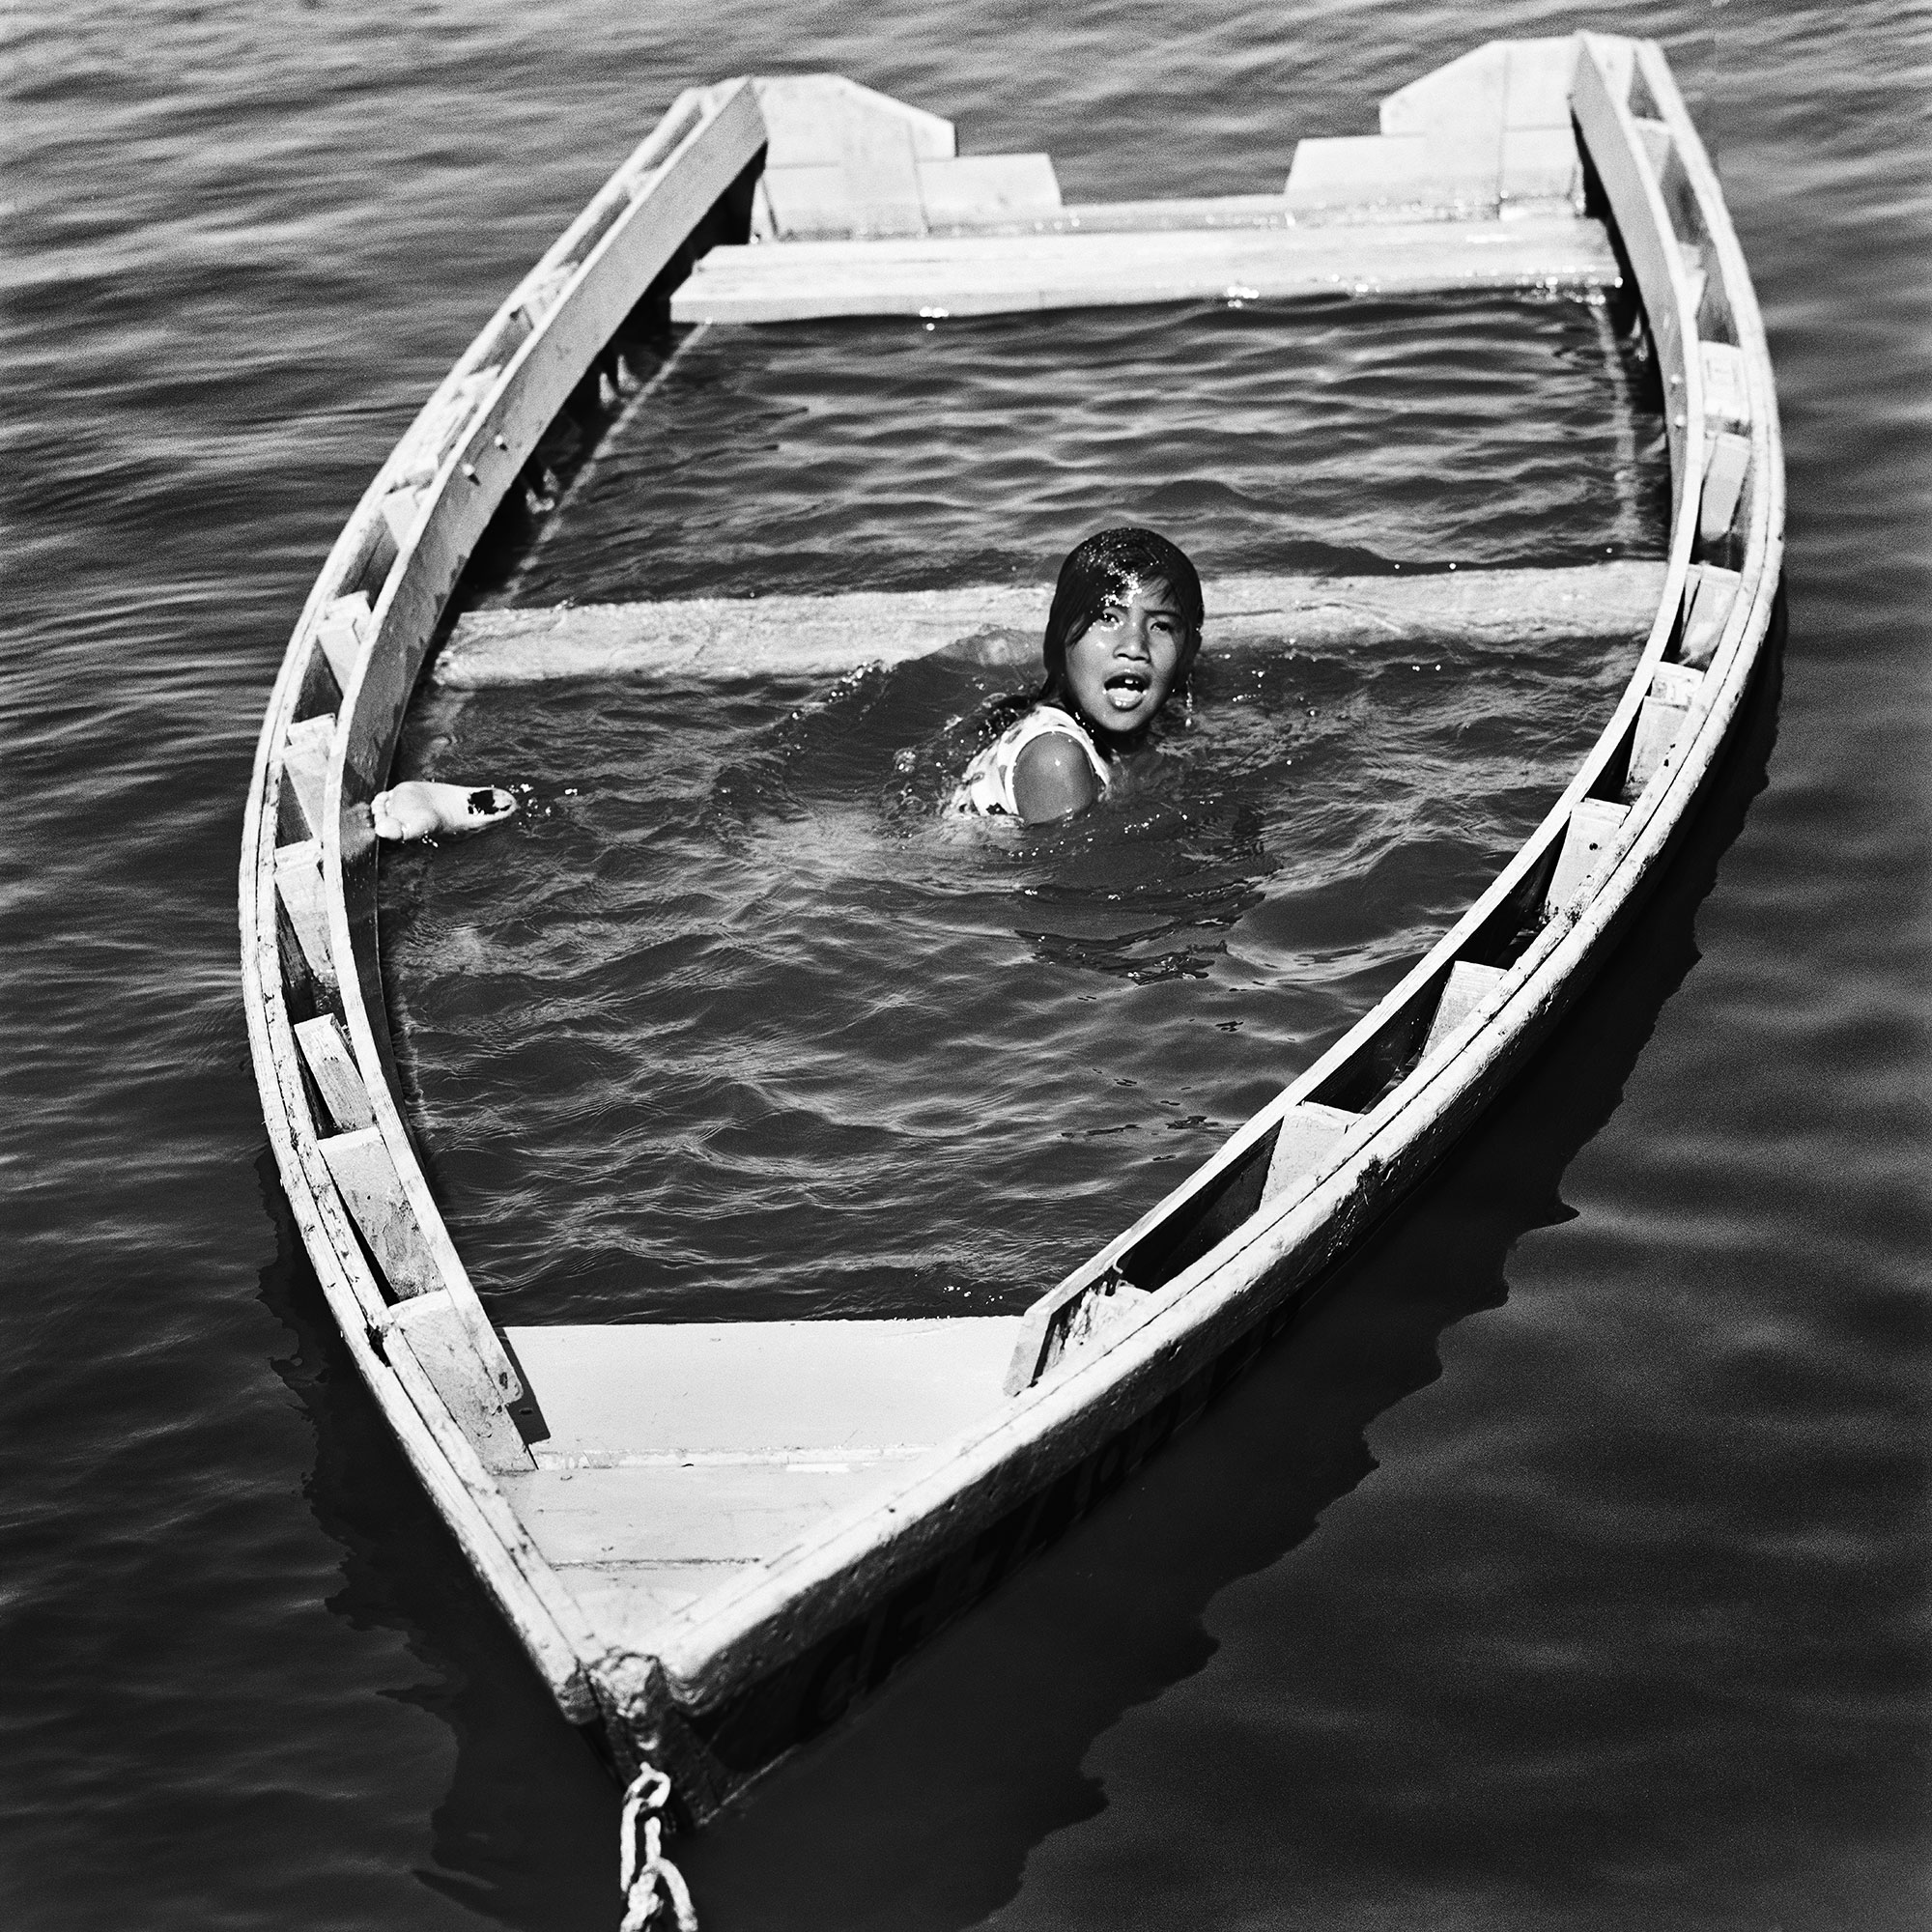 Girl Swimming in Boat, 1969